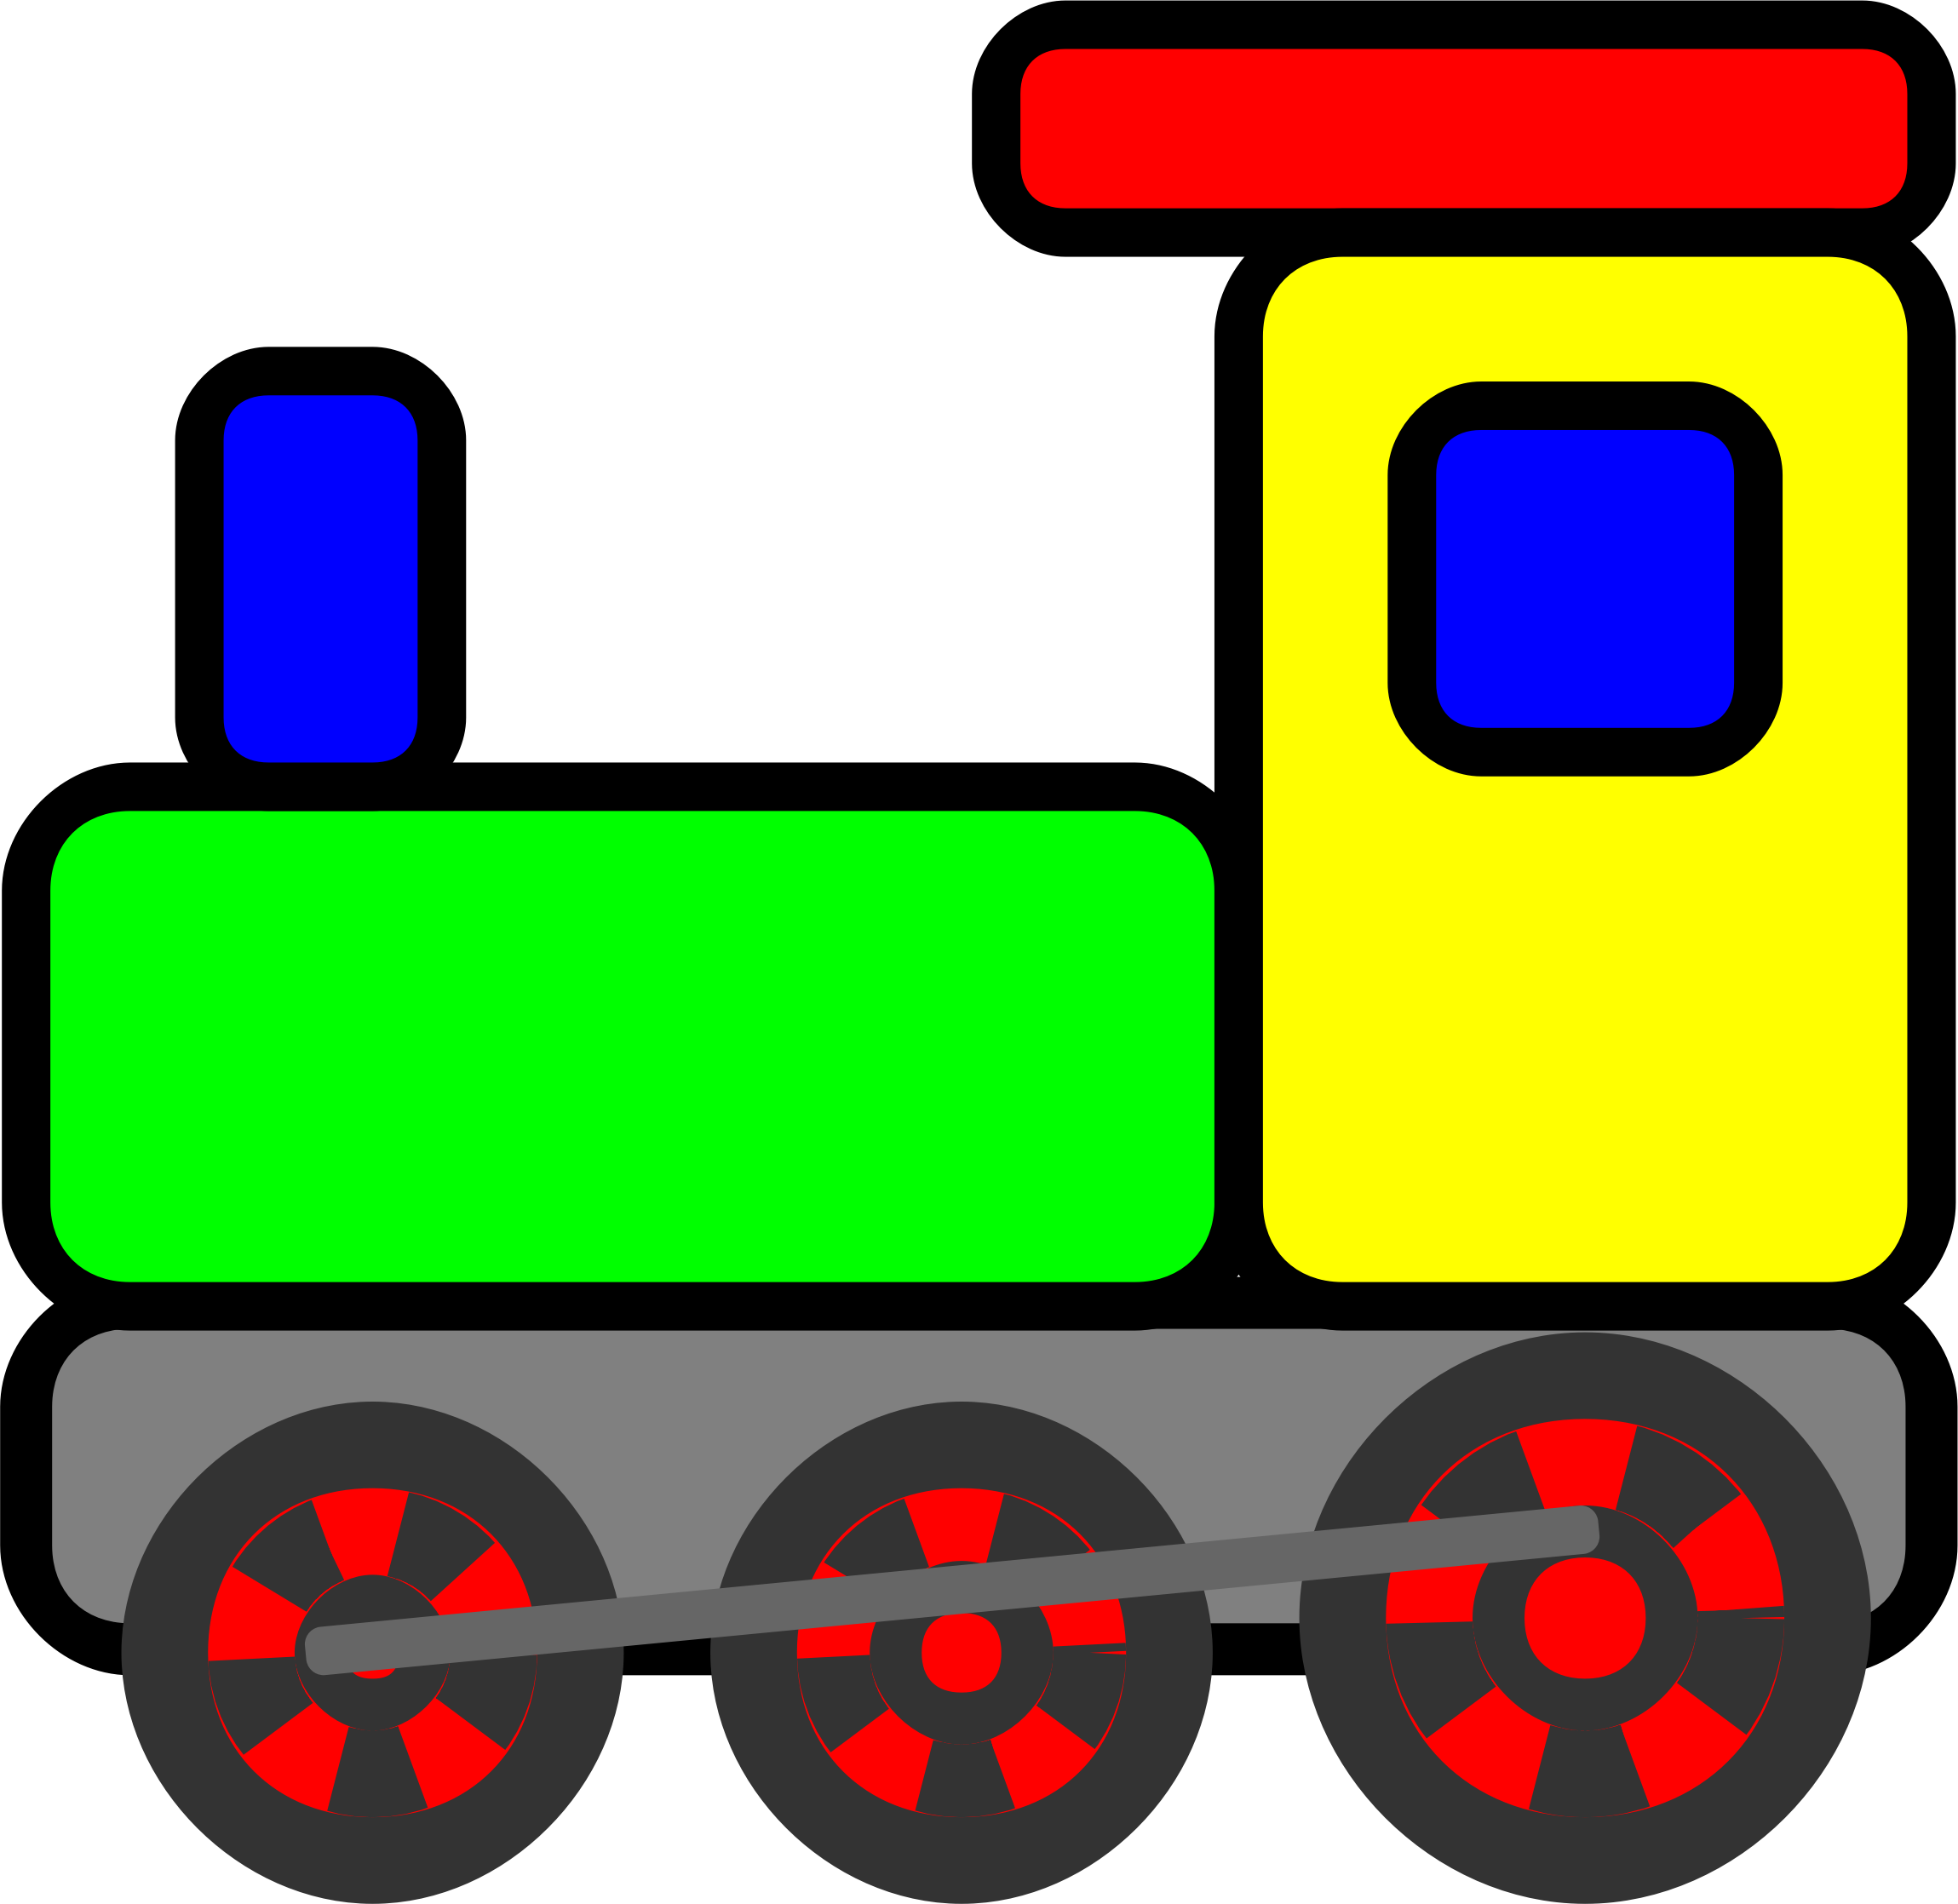 Kindergarten clipart train. Scripted toy icons png